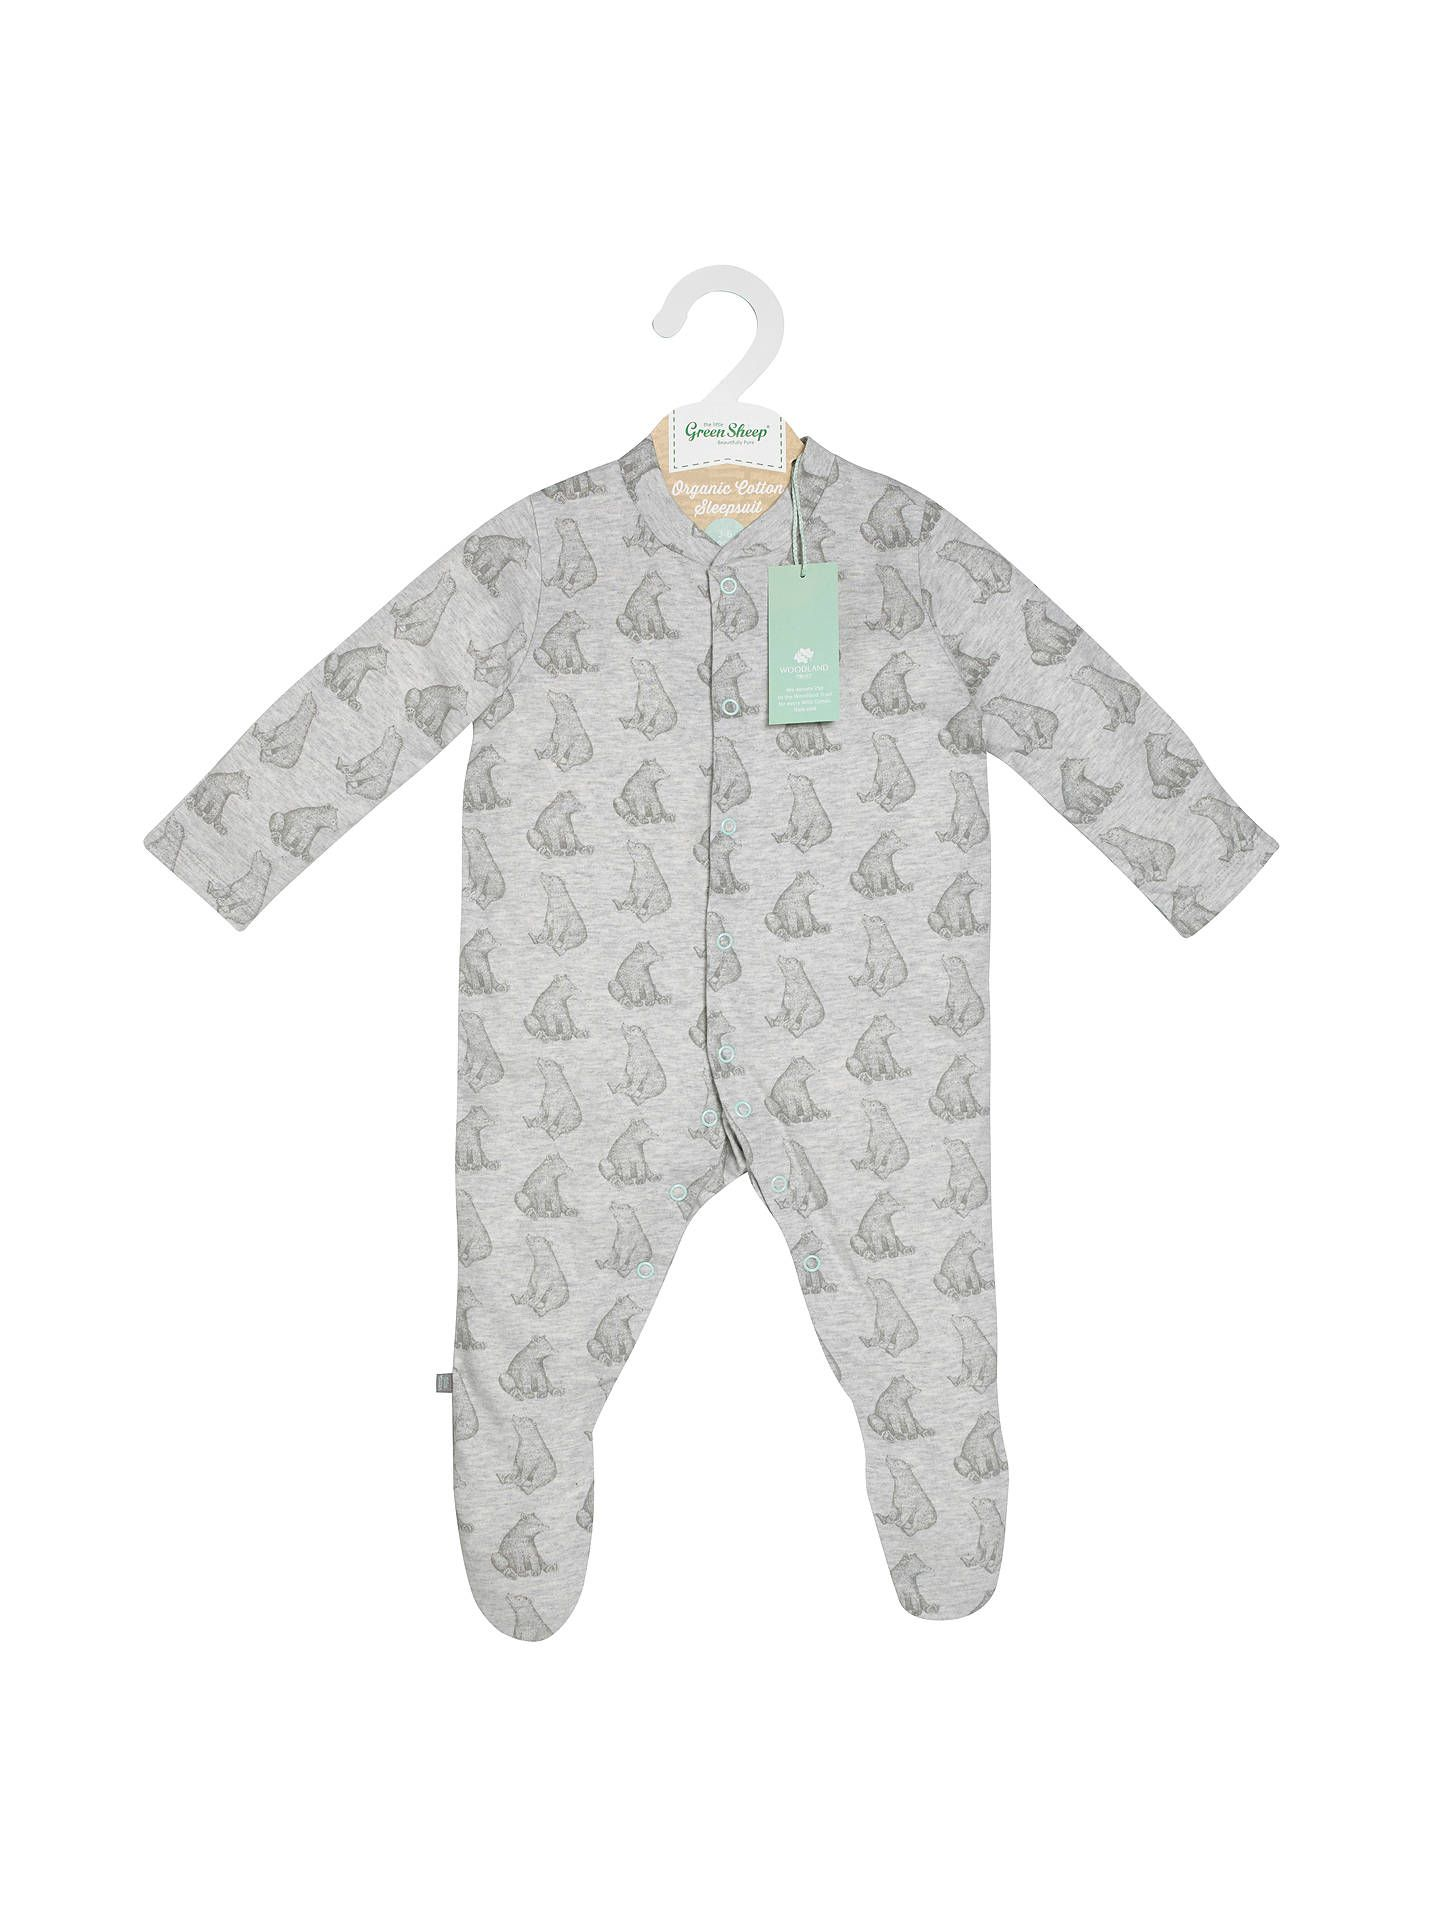 182931ee6 The Little Green Sheep Baby Bear Print Wild Cotton Sleepsuit